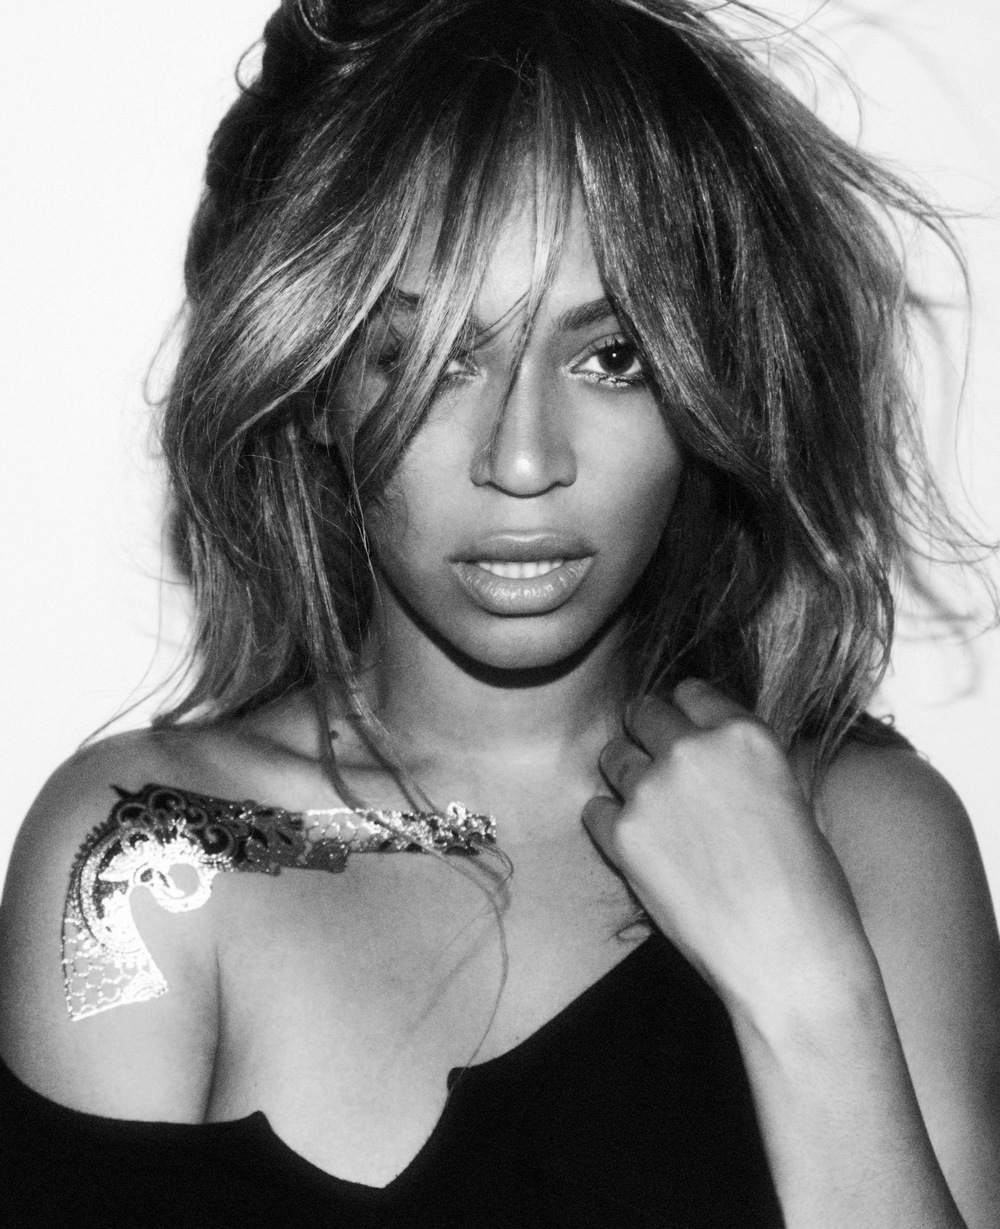 beyonce flash tat cr fashion book bikini bird